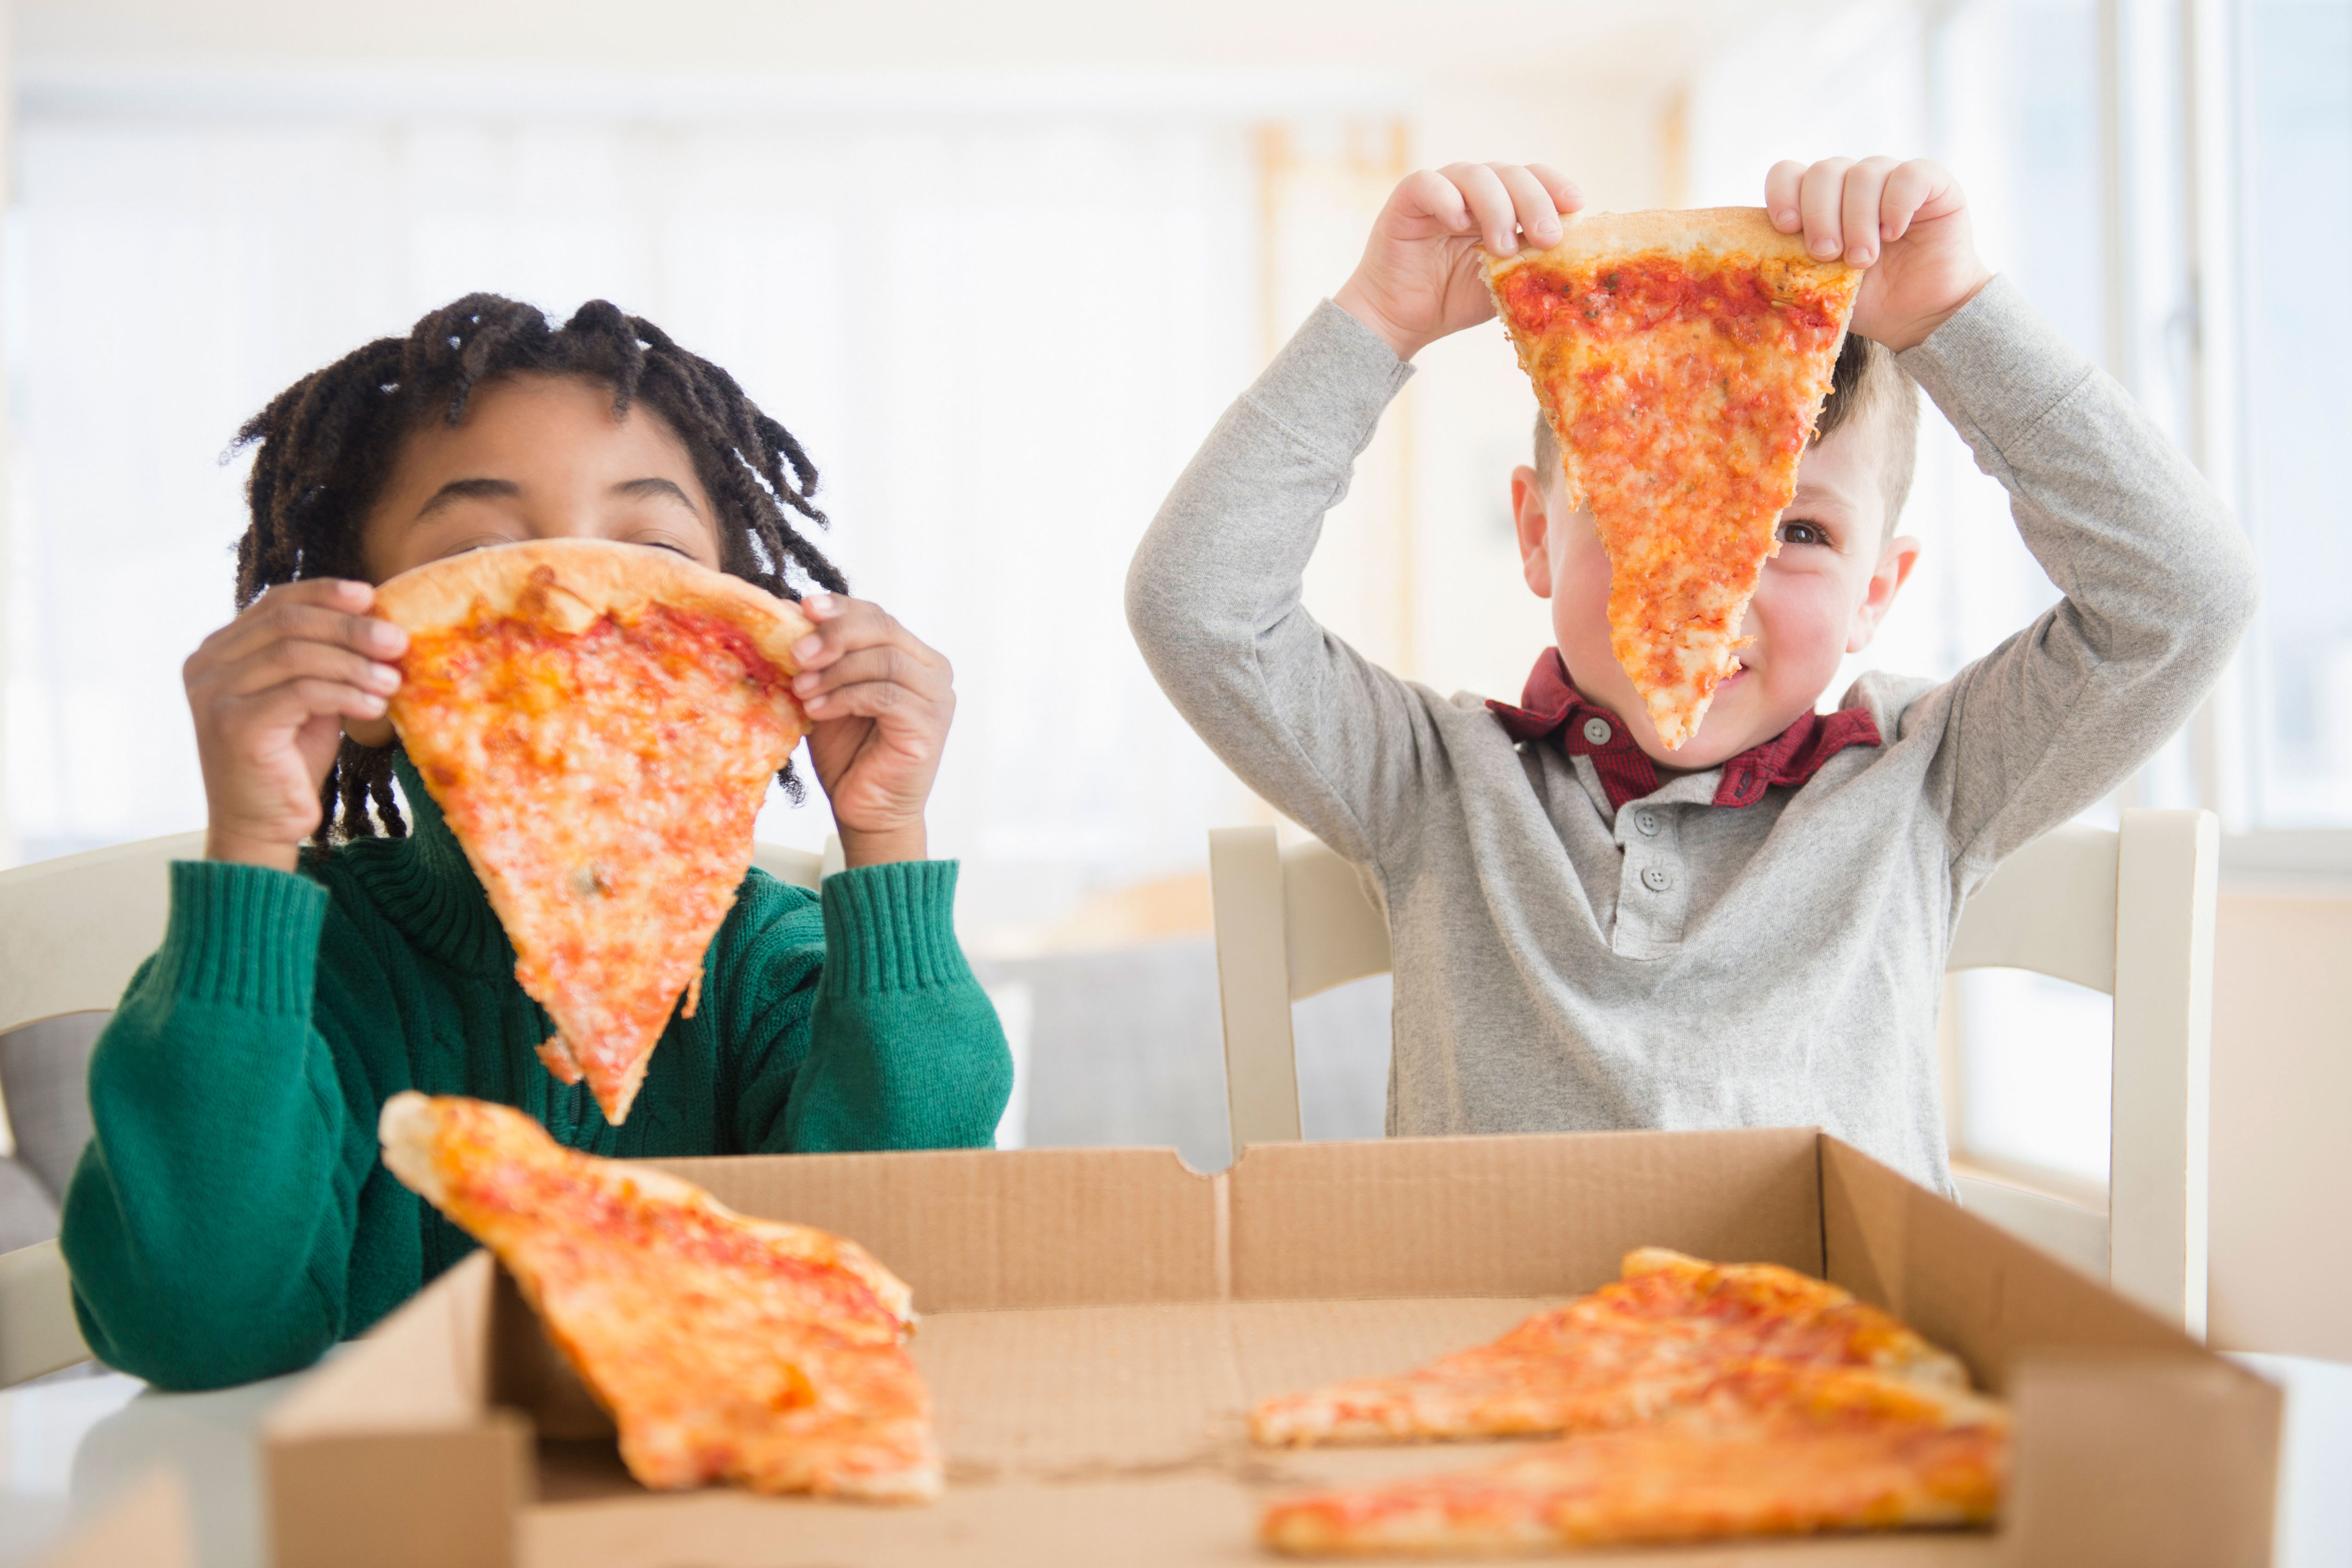 WATCH: This Florida Pizza Joint Just Put a Ban on Kids—and Some Parents Are Not Happy About It